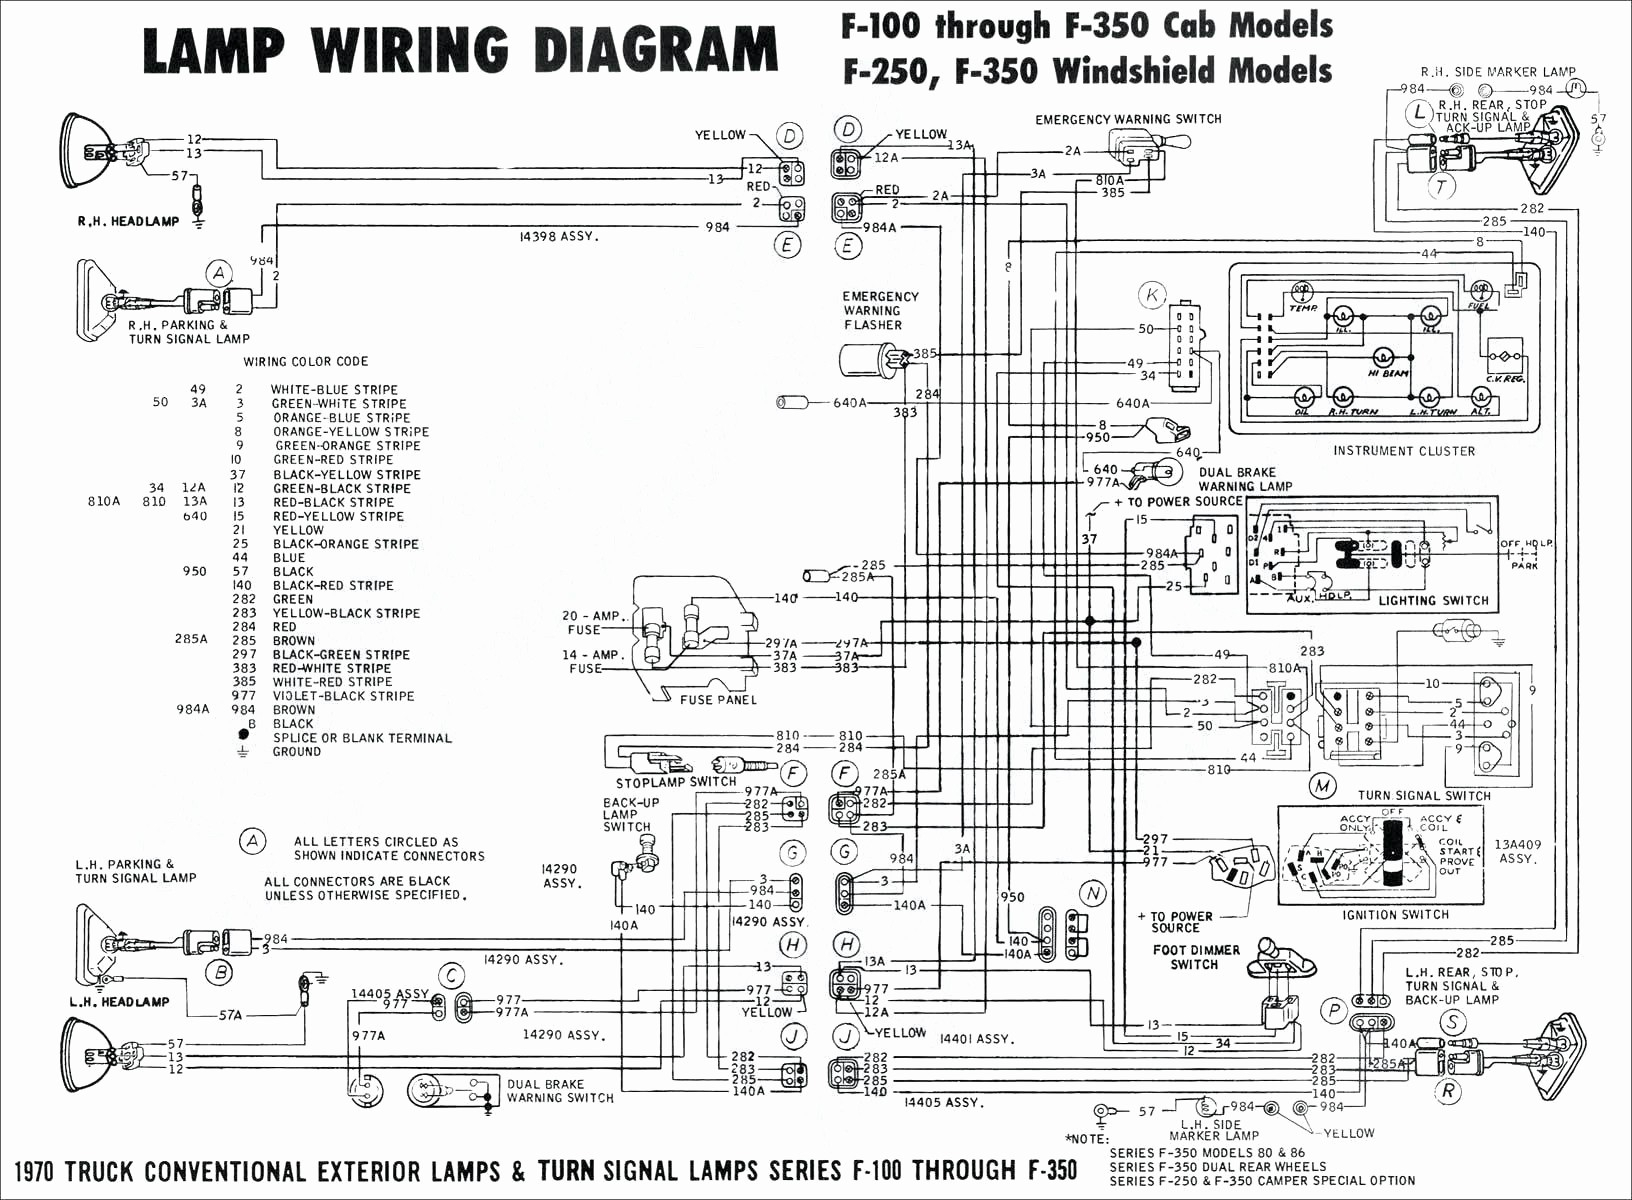 2011 ford f650 wiring diagram trusted wiring diagrams ford f100 wiring harness 2011 f650 wiring diagram wire data schema \\u2022 2007 f750 wiring diagram 2011 ford f650 wiring diagram